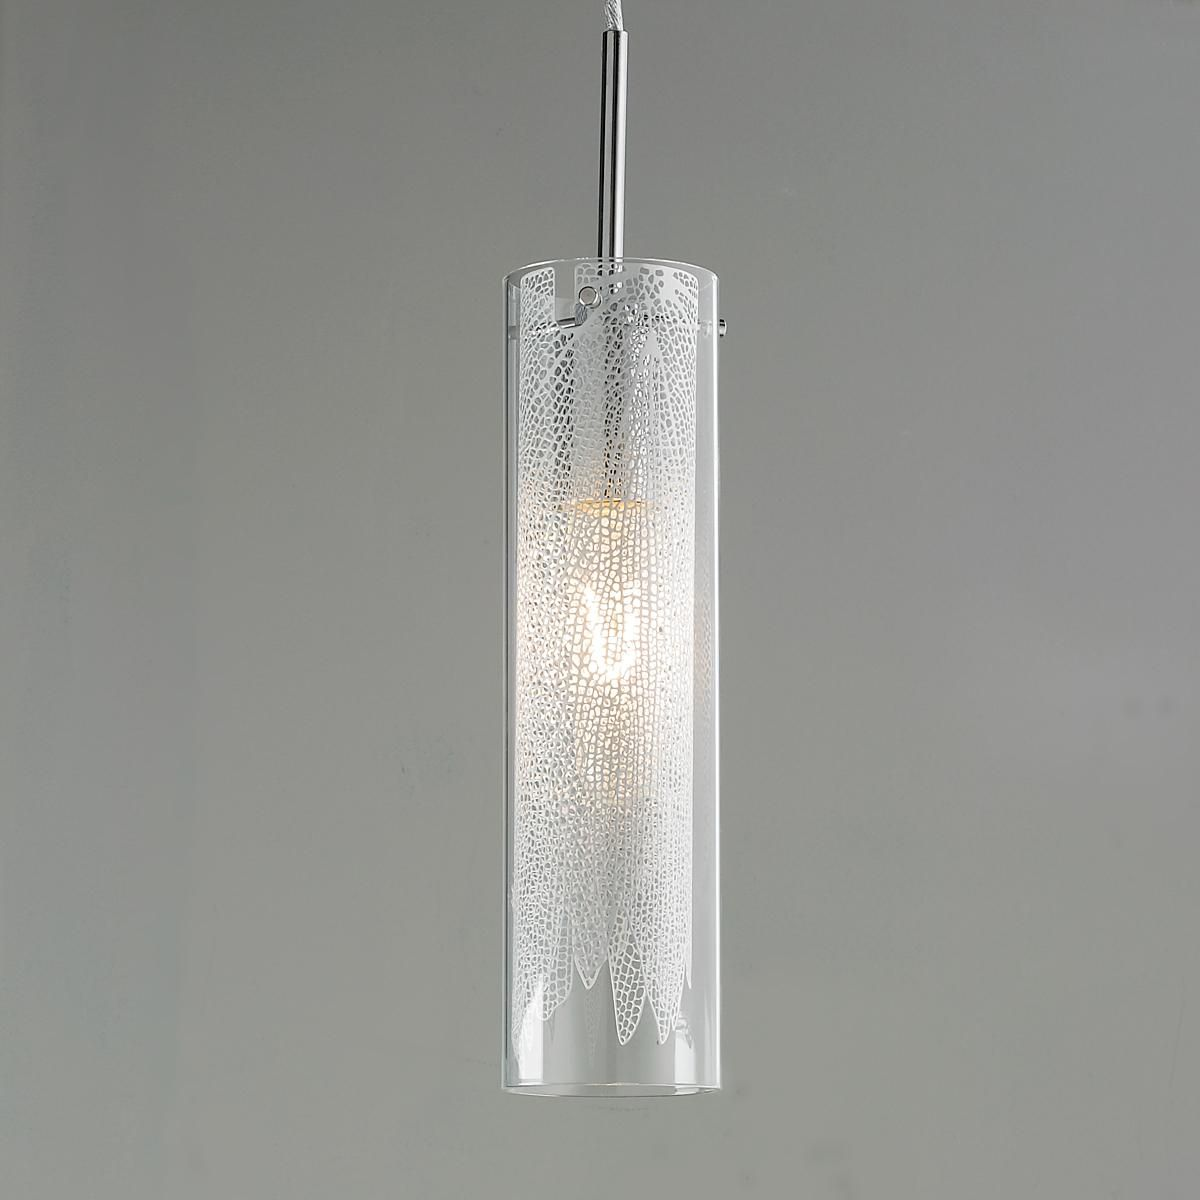 Kitchen Pendant Lighting Glass Shades Draped Netting Under Glass Pendant Mini Pendants